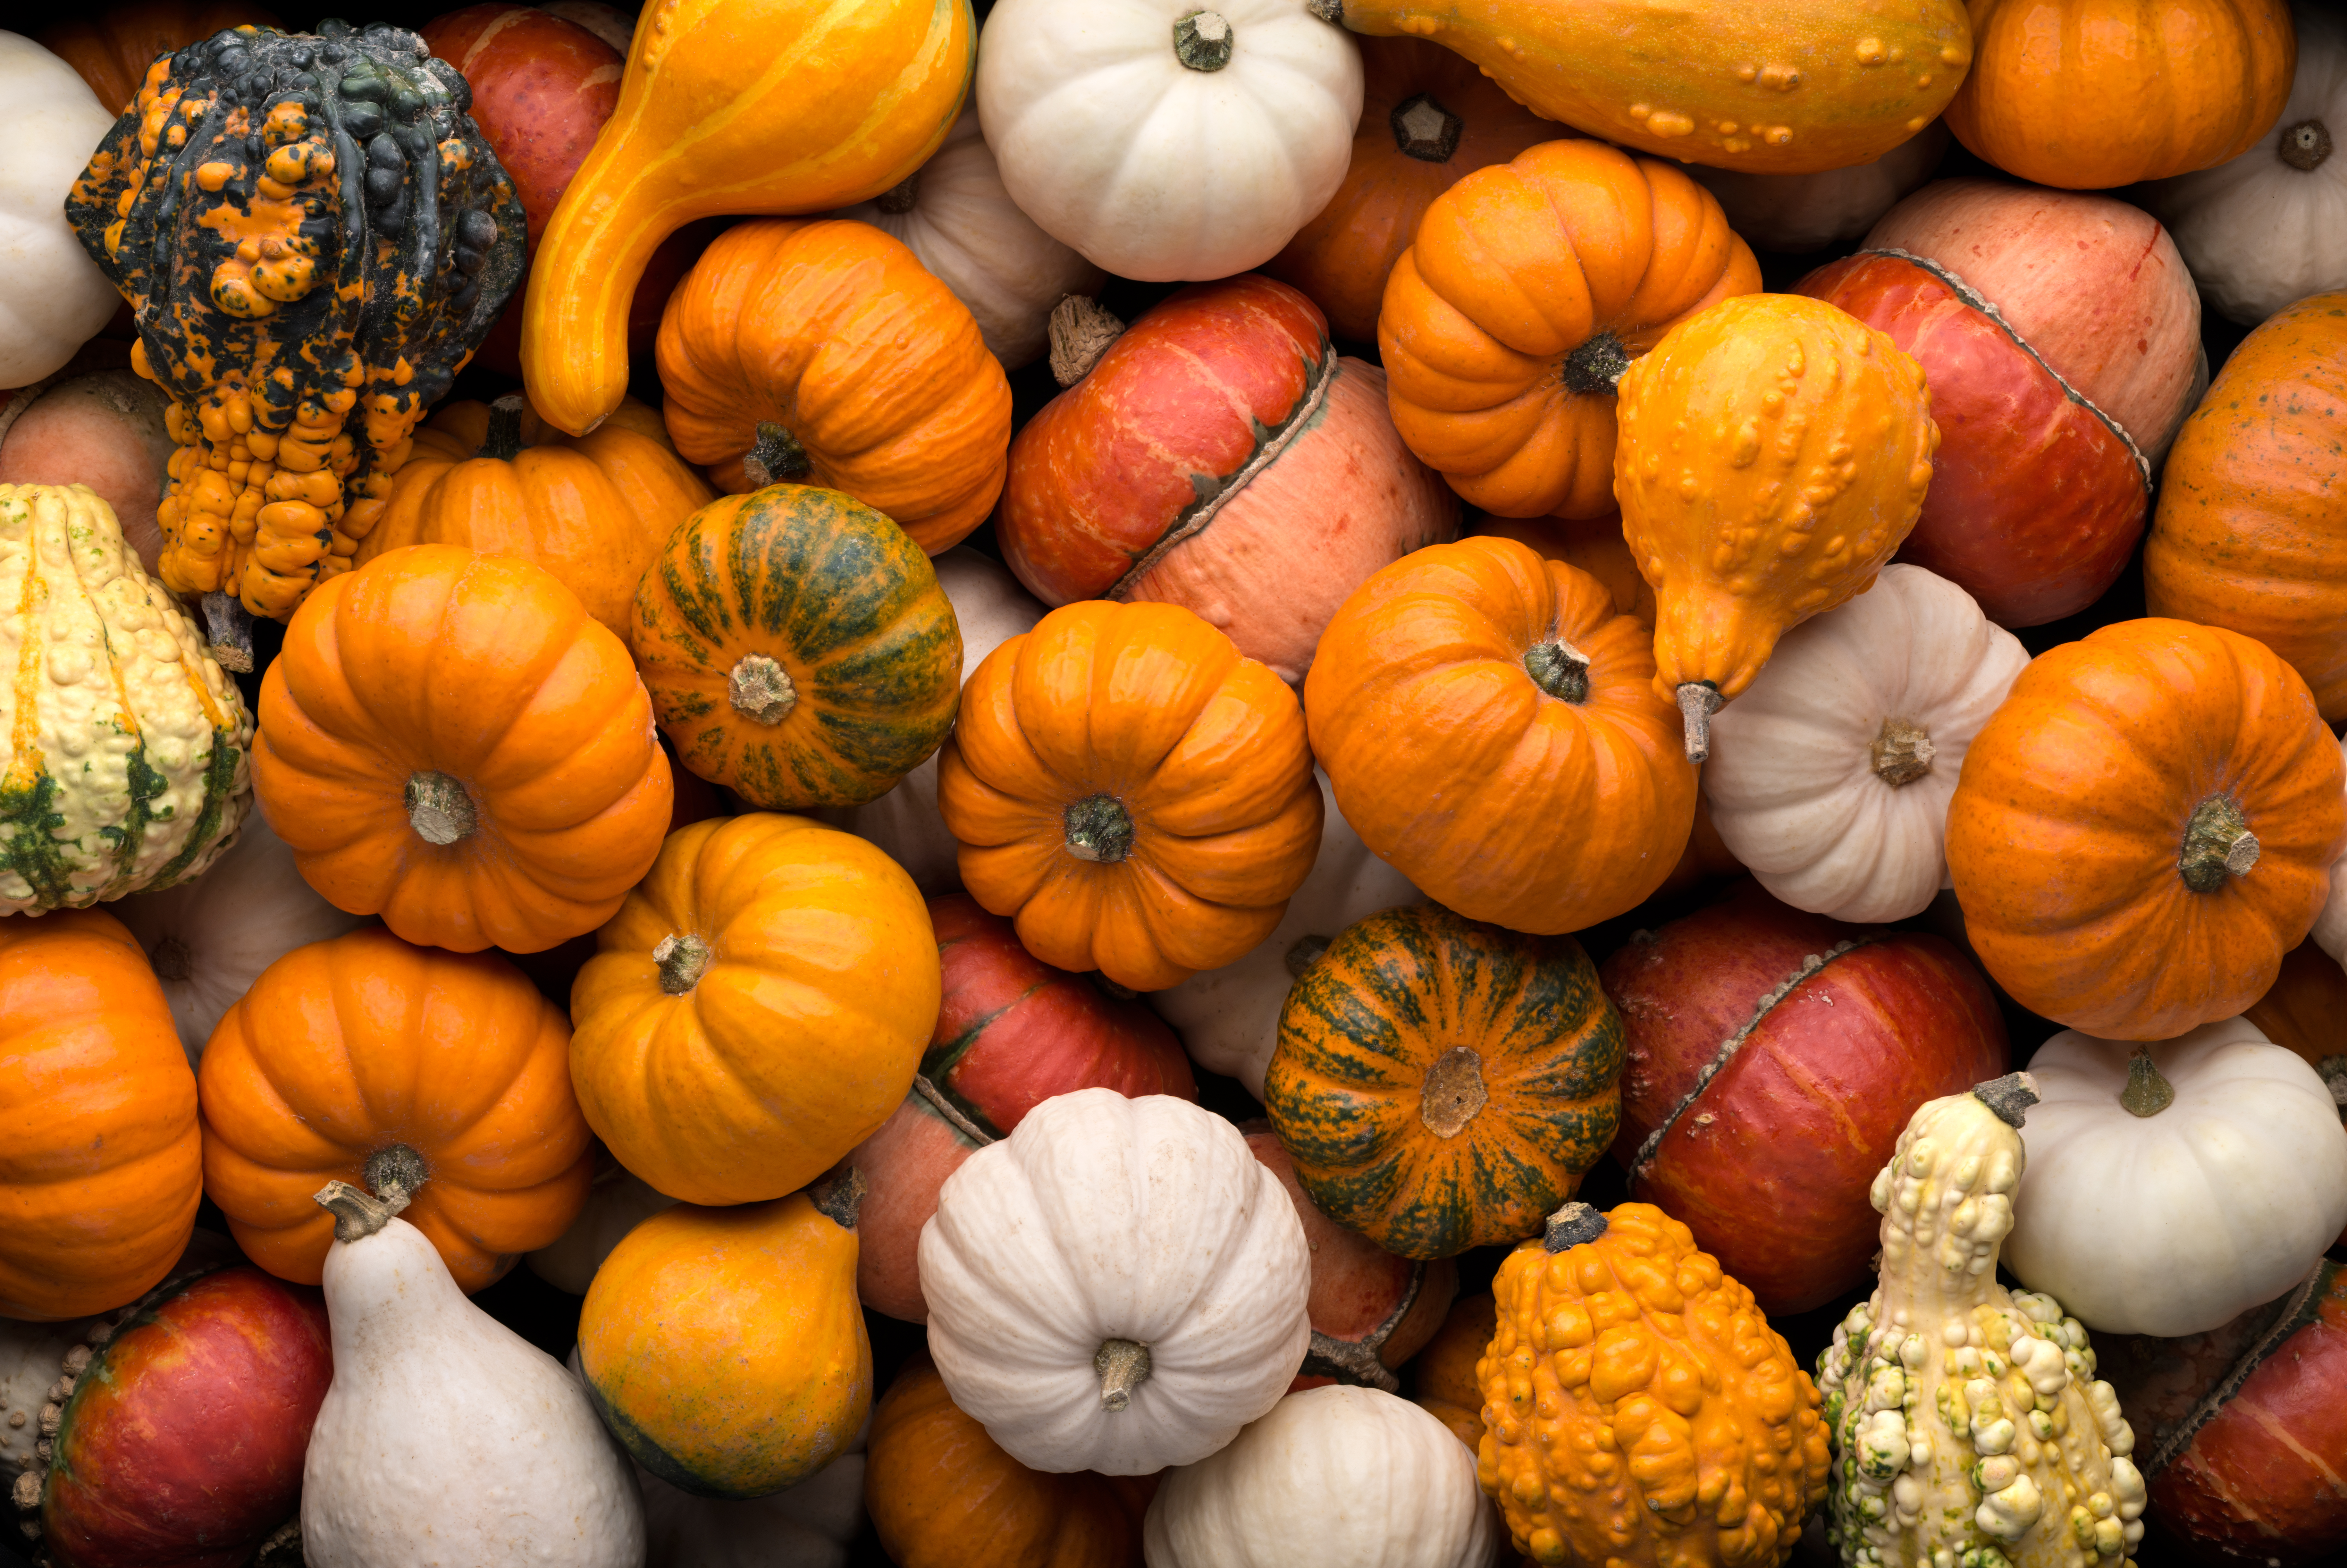 5 quirky pumpkin recipes to try this fall